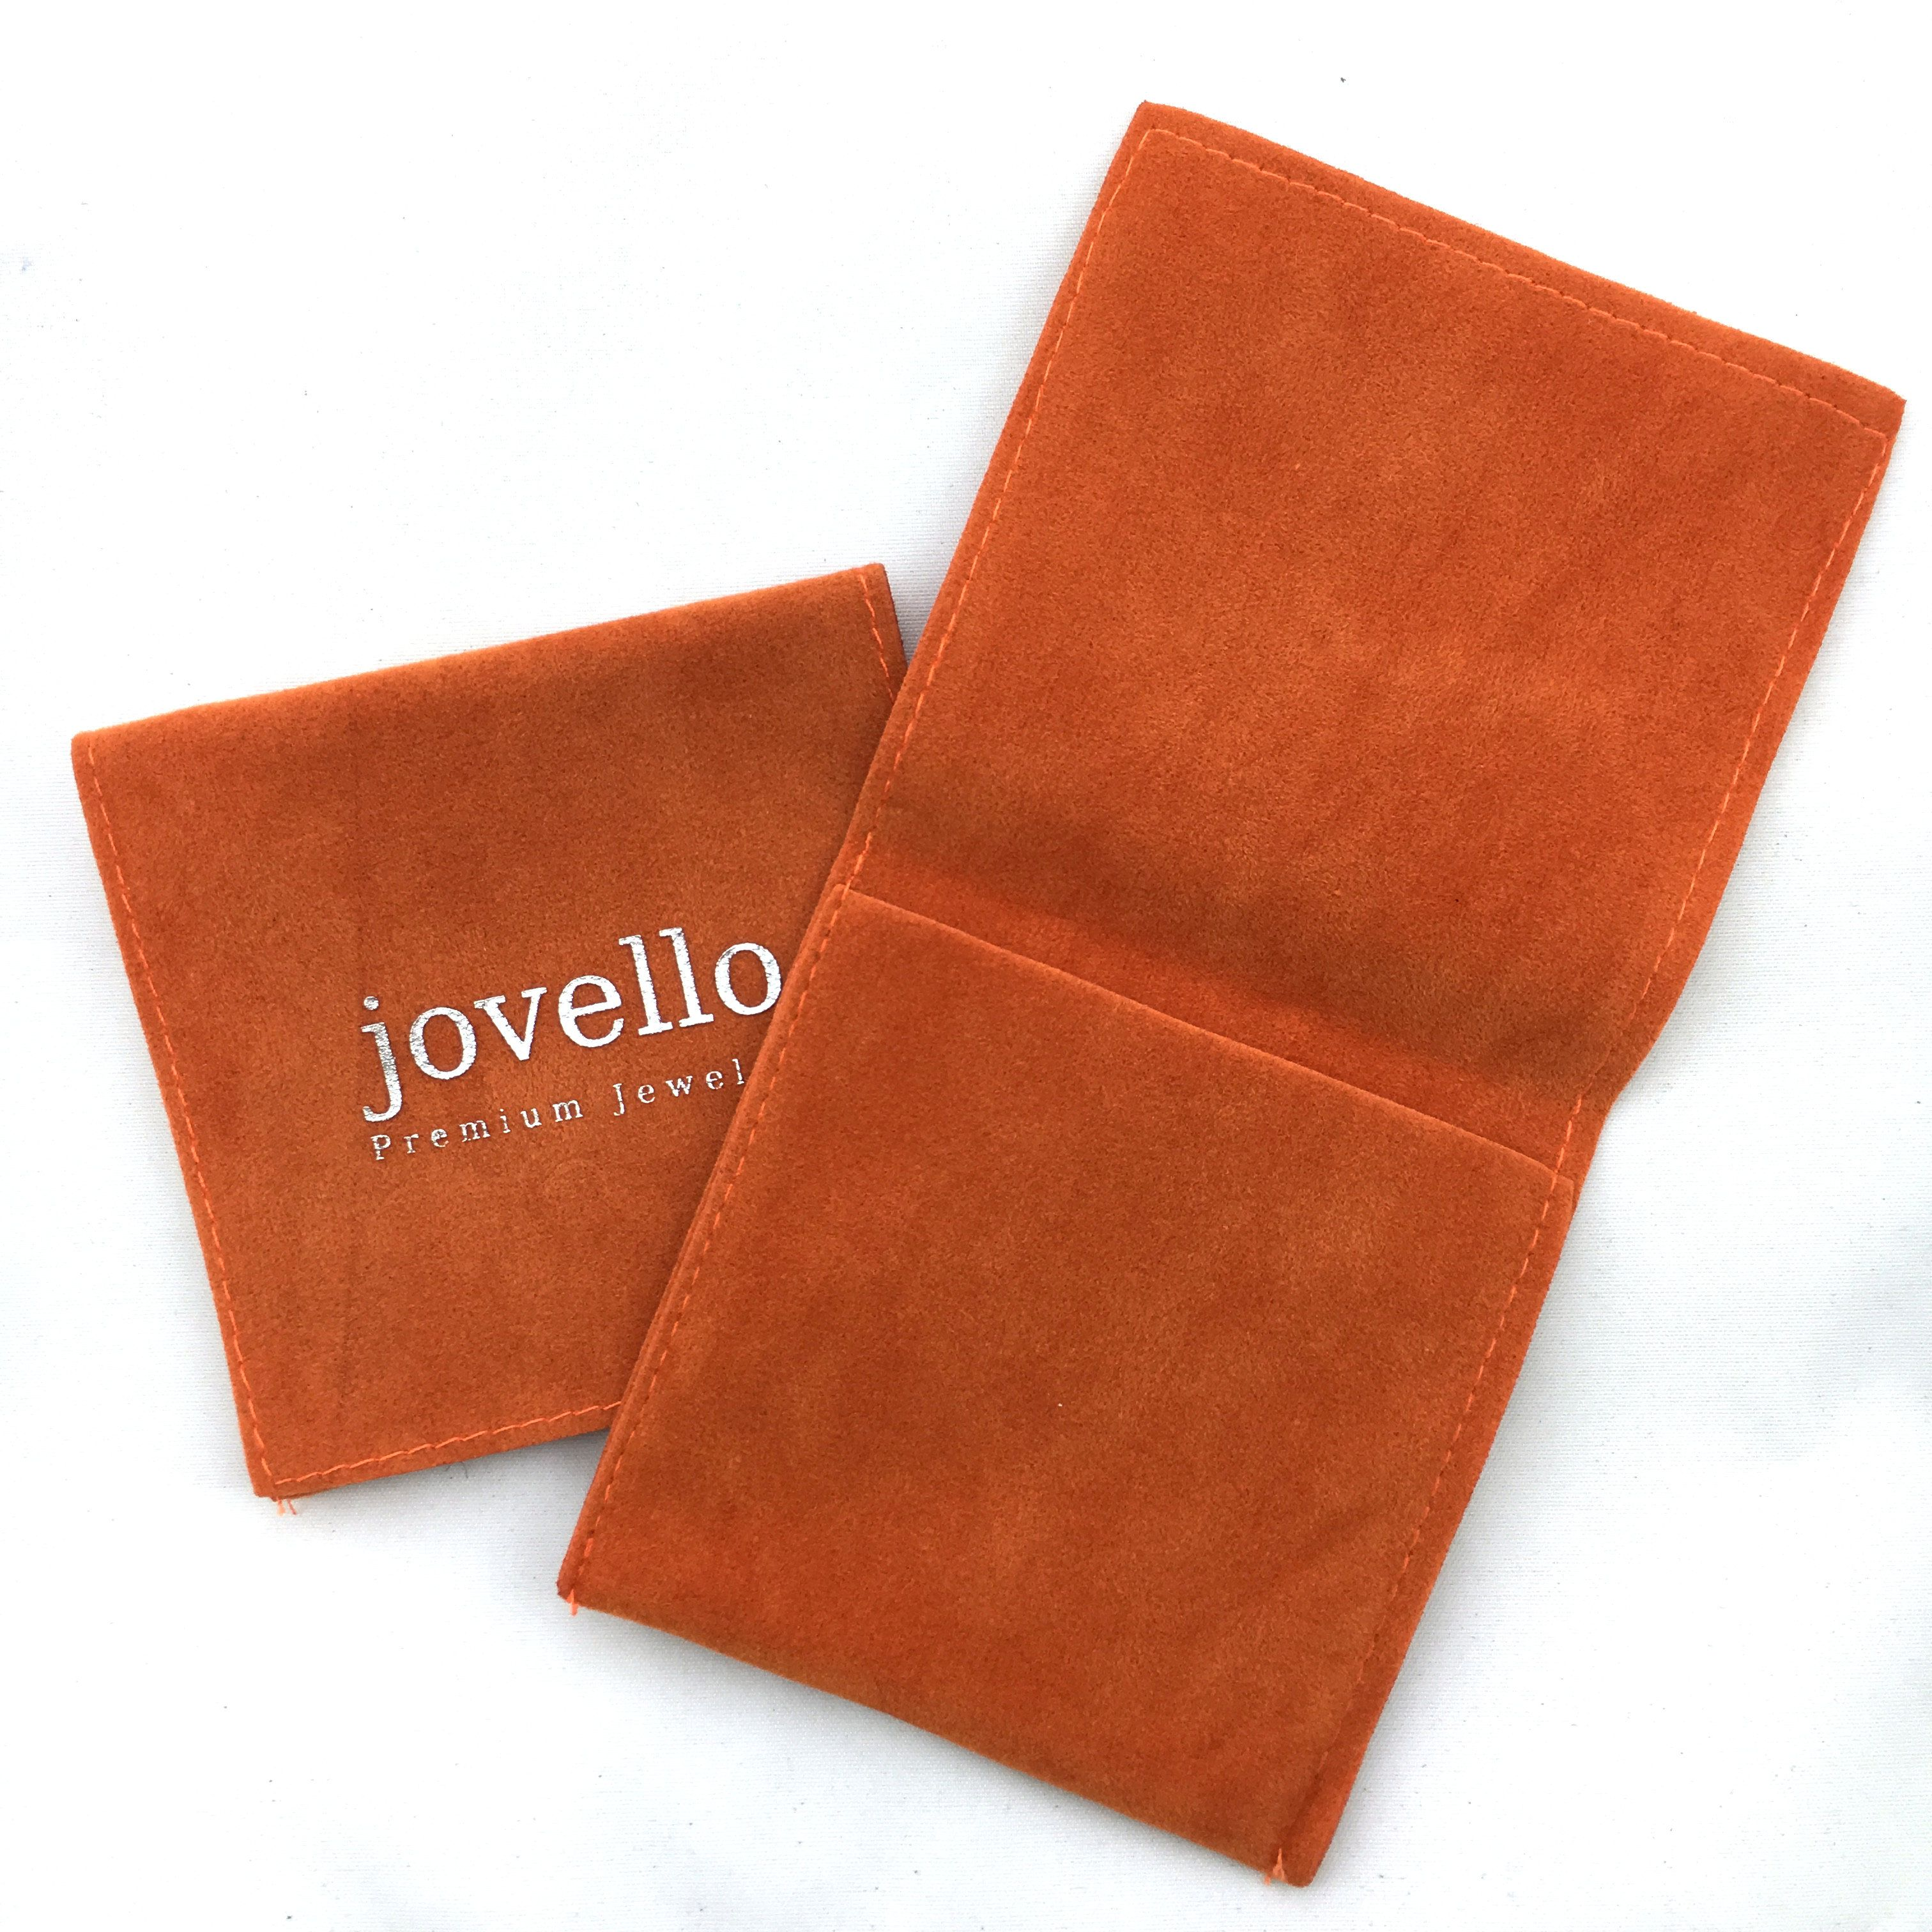 Wholesale Jewelry Packaging 4 4 Inches Orange Flap Velvet Jewelry Pouch Necklace Packing